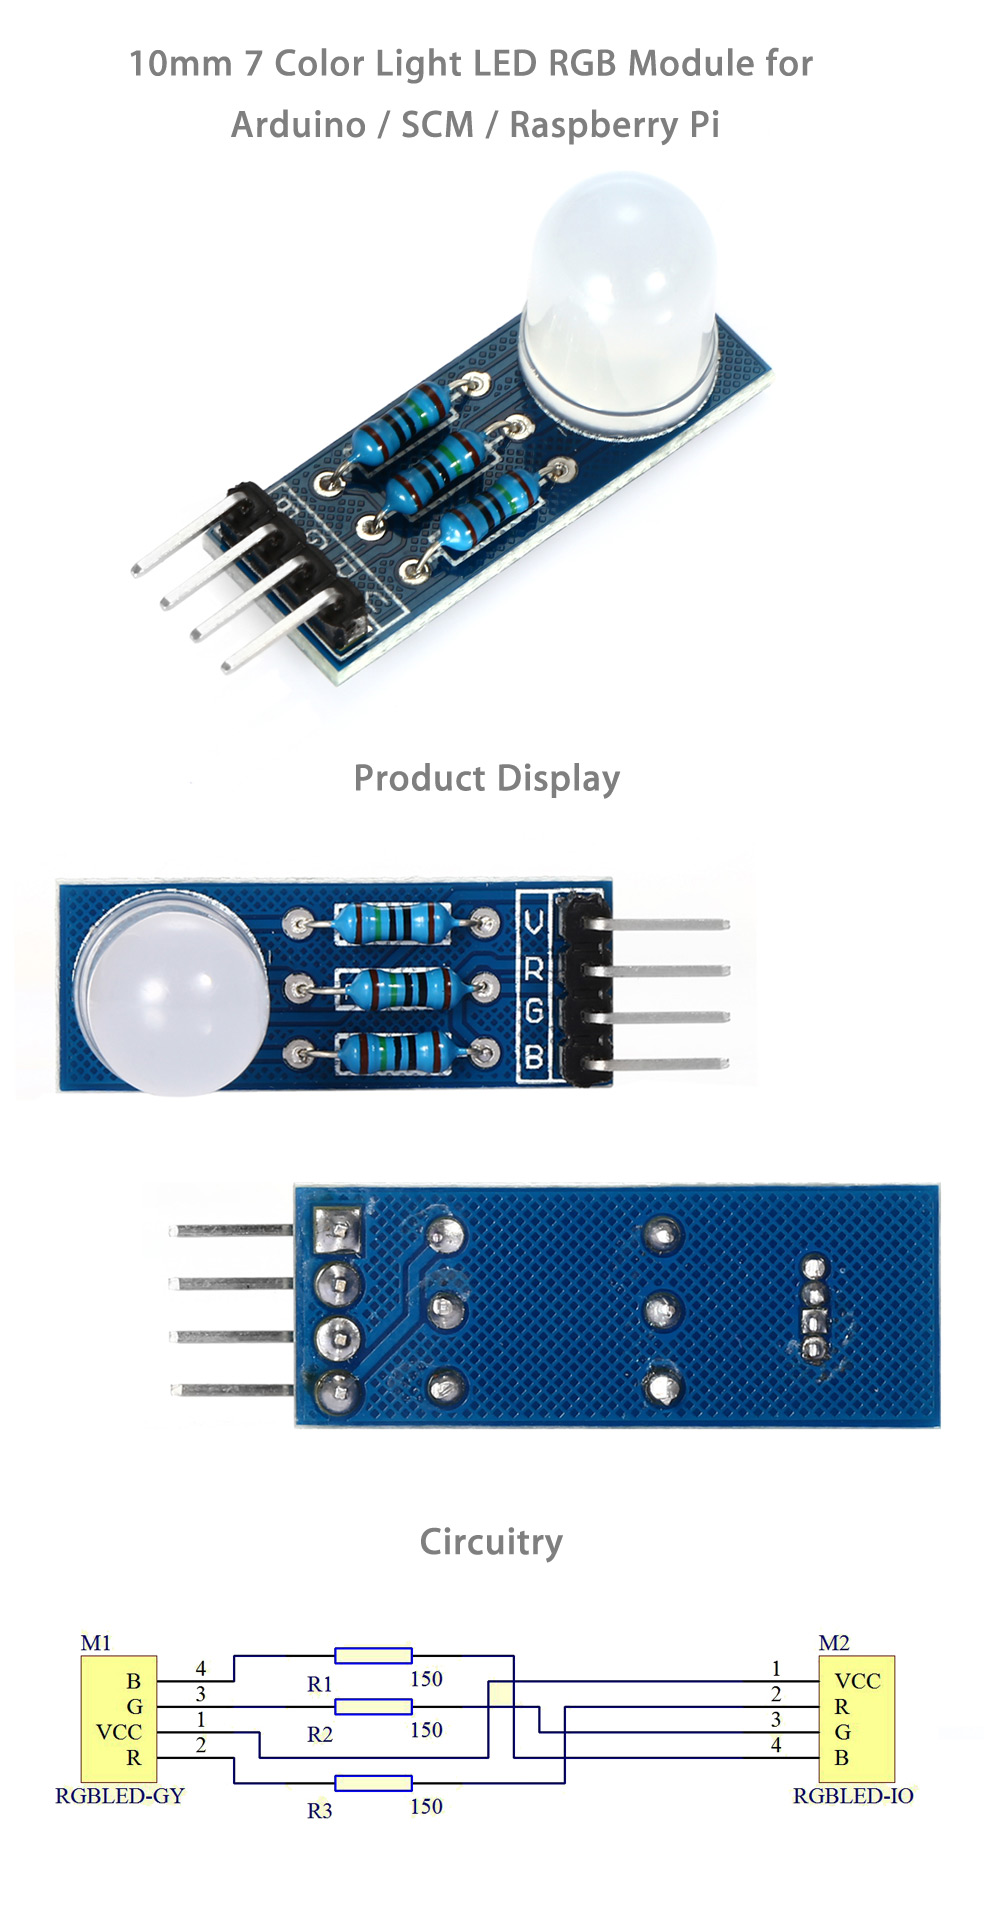 LDTR - B00010 DIY 10mm High Brightness LED RGB Module with 7 Color Light